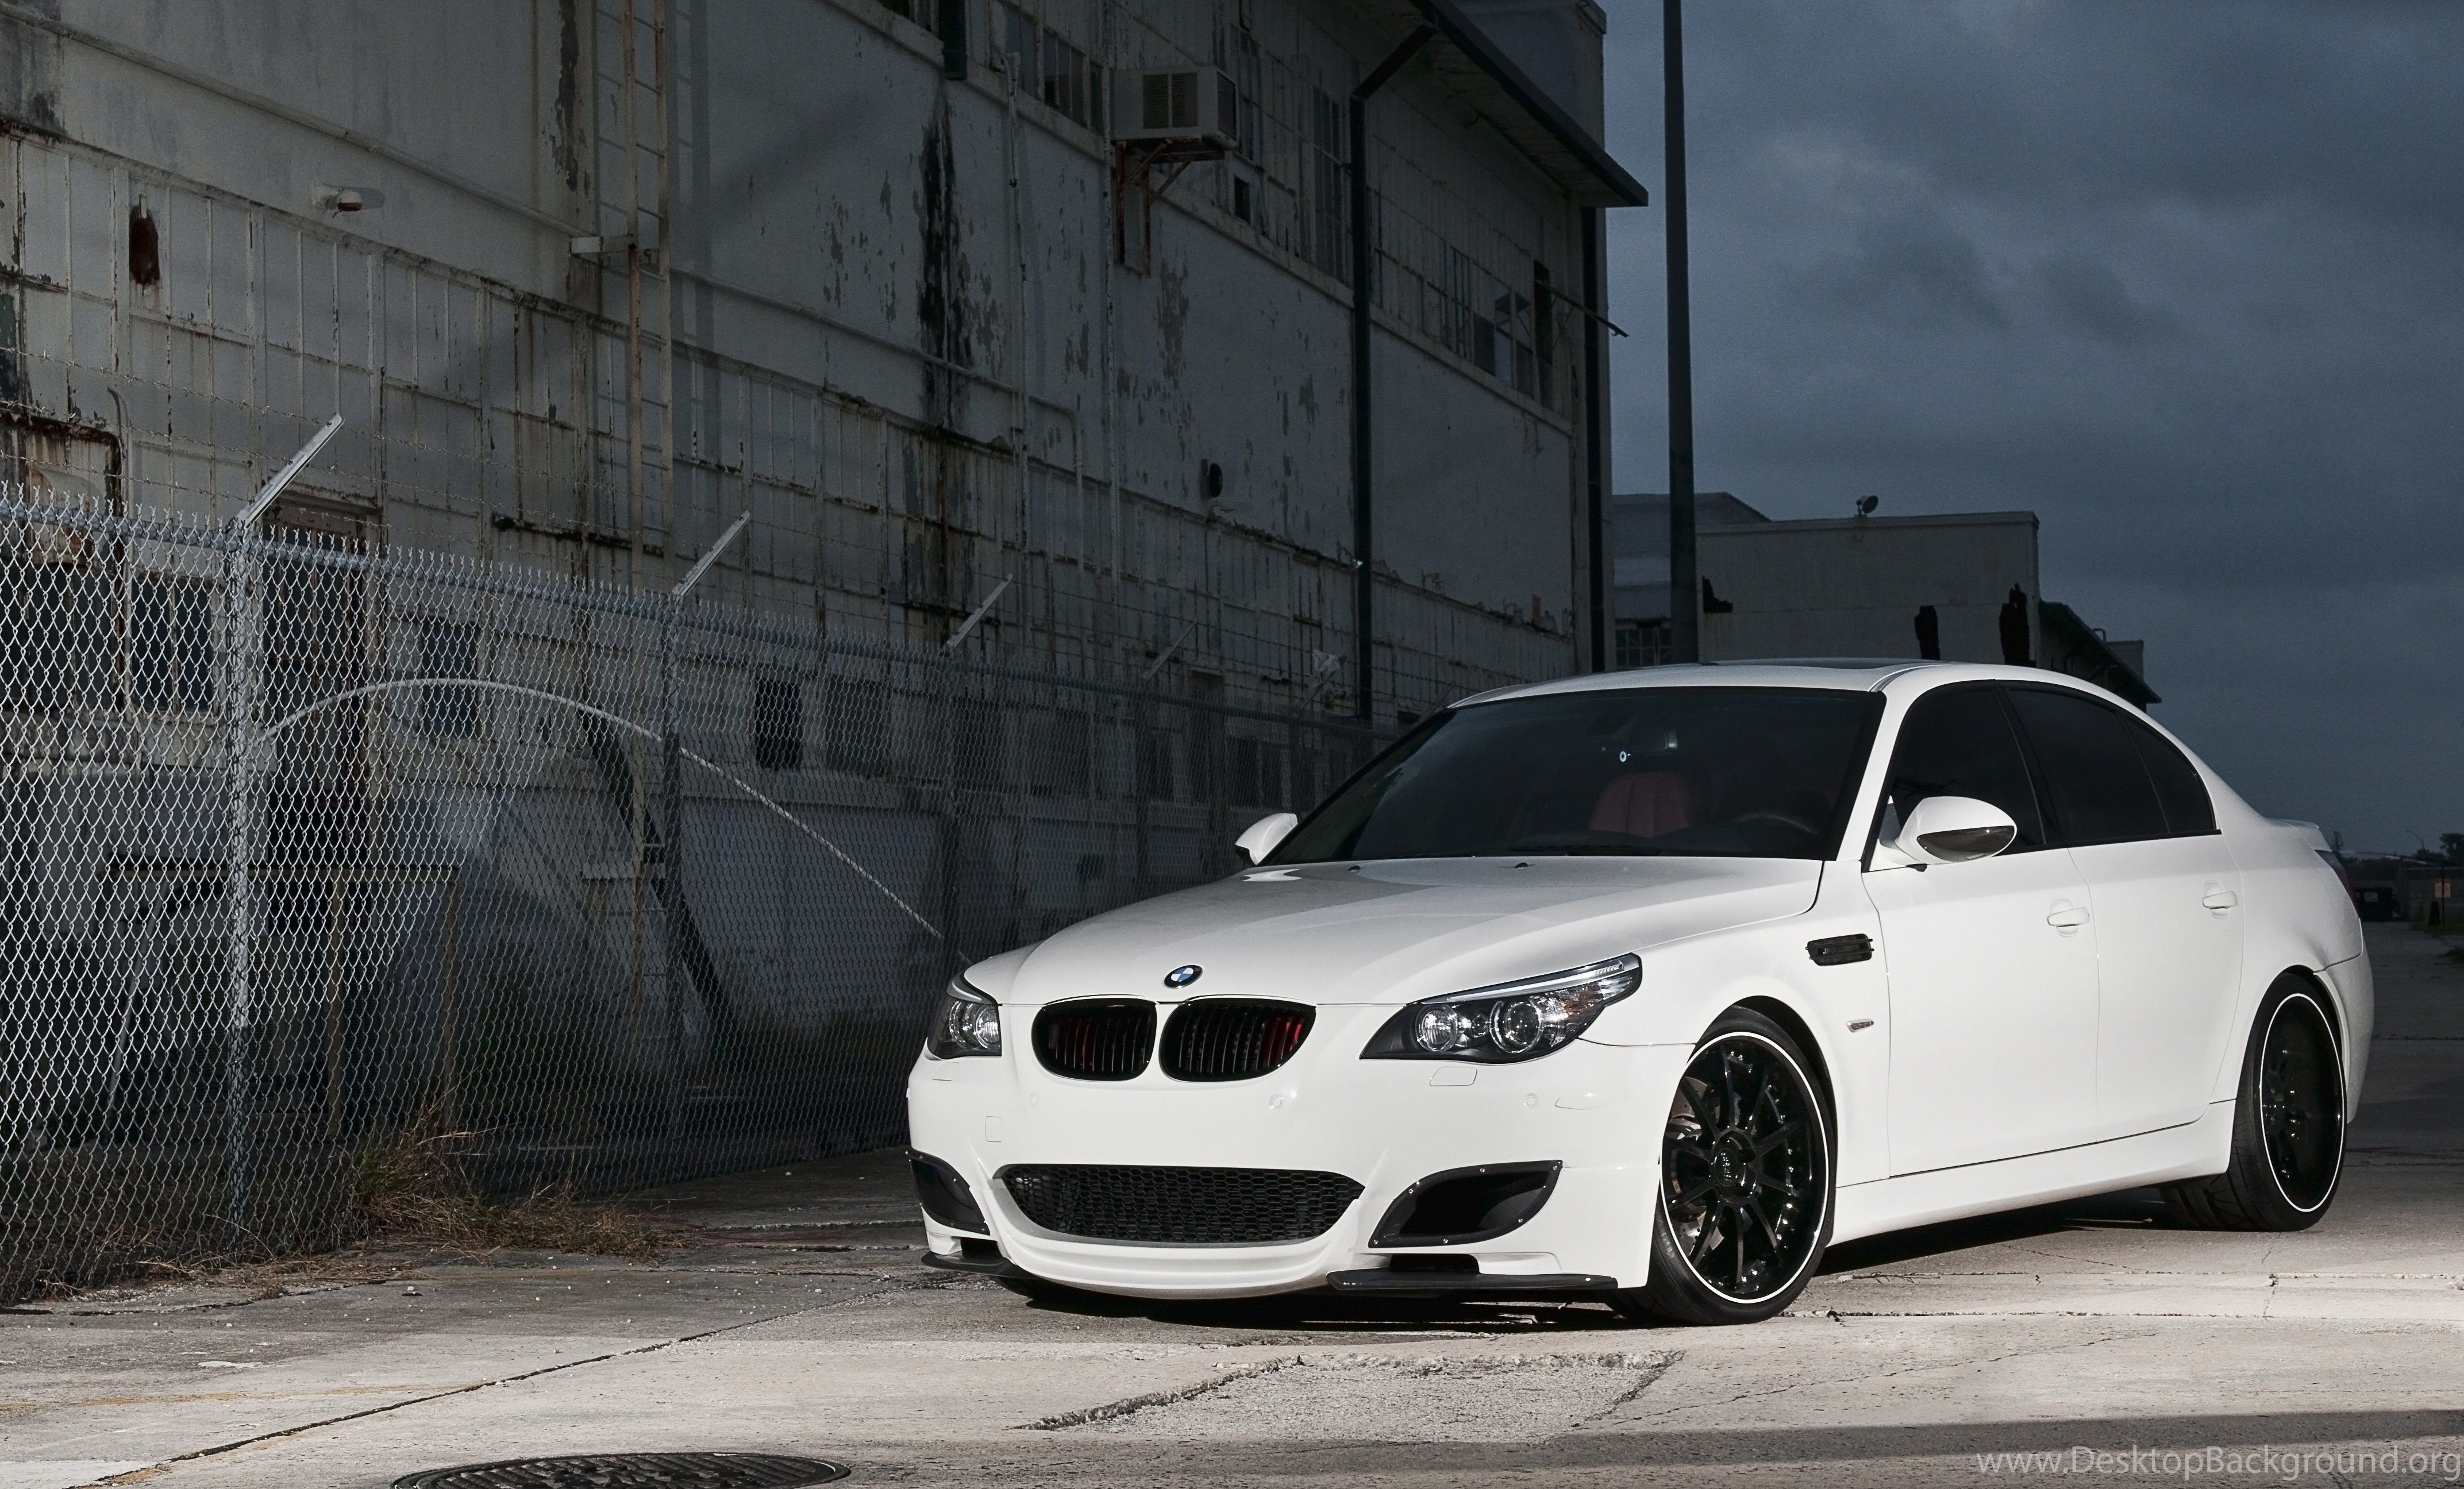 BMW E60 M5 Modded Wallpapers Desktop Background